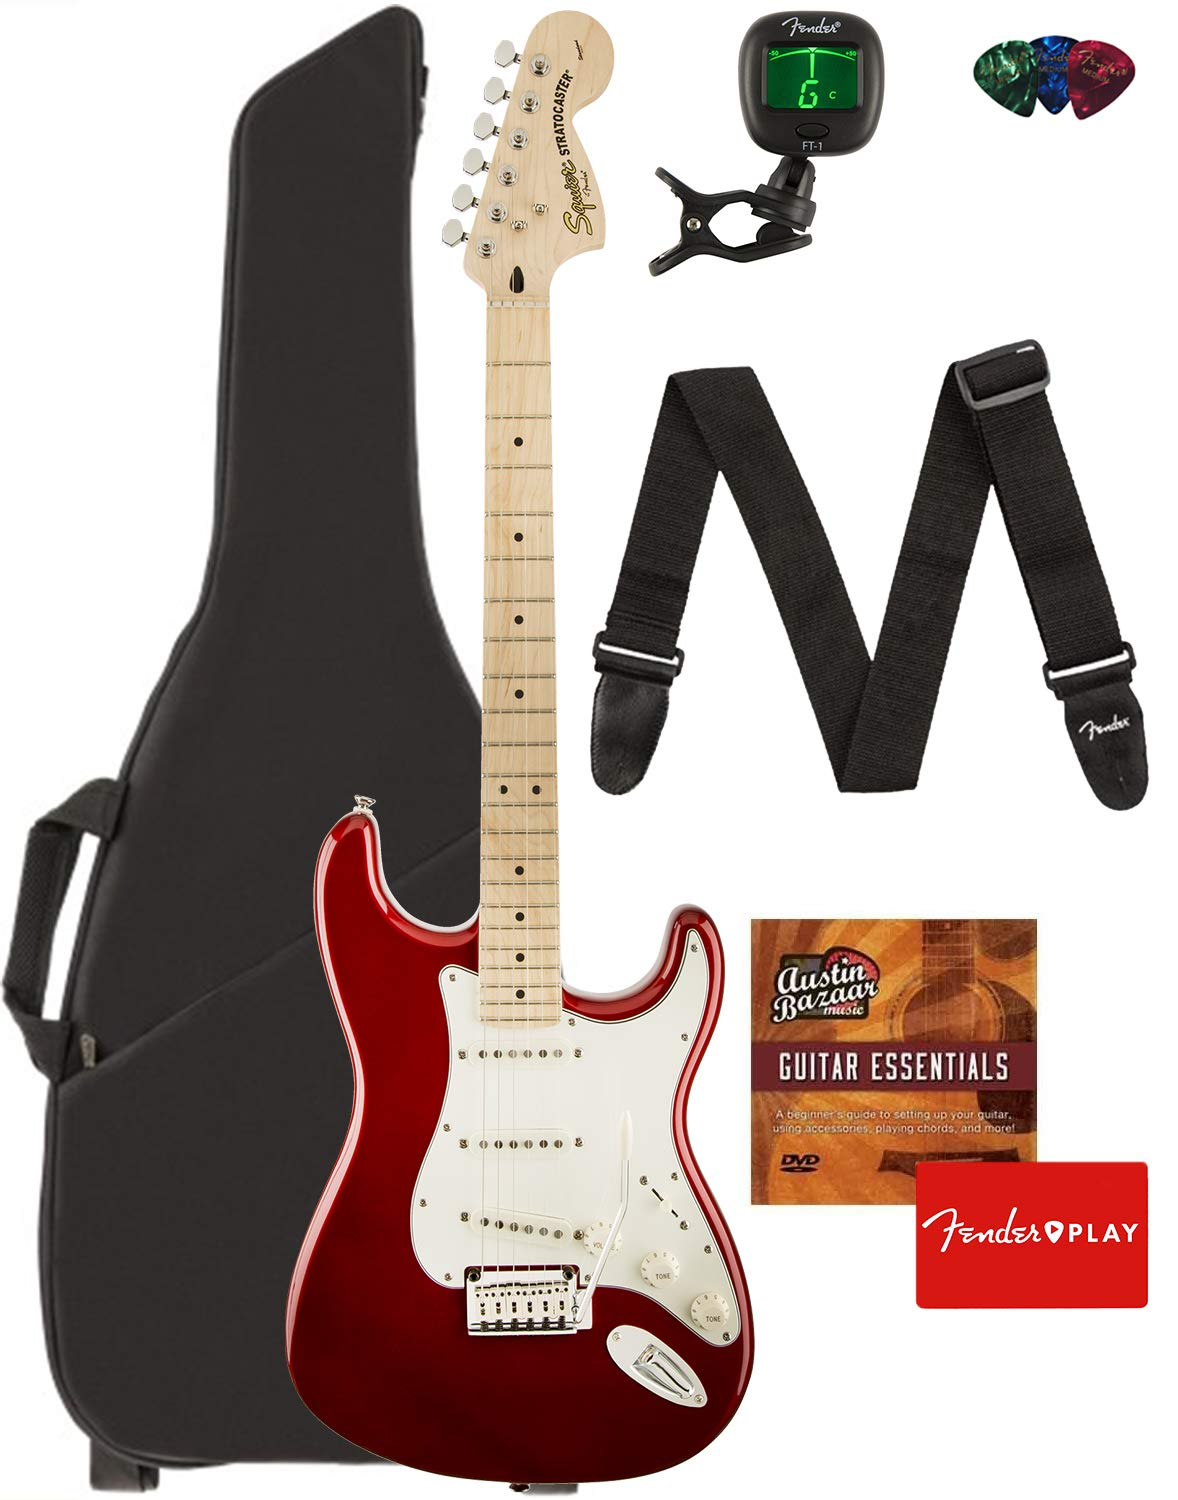 Fender Squier Standard Stratocaster Guitar - Maple Fingerboard, Candy Apple Red Bundle with Gig Bag, Tuner, Strap, Picks, and Austin Bazaar Instructional DVD by Fender